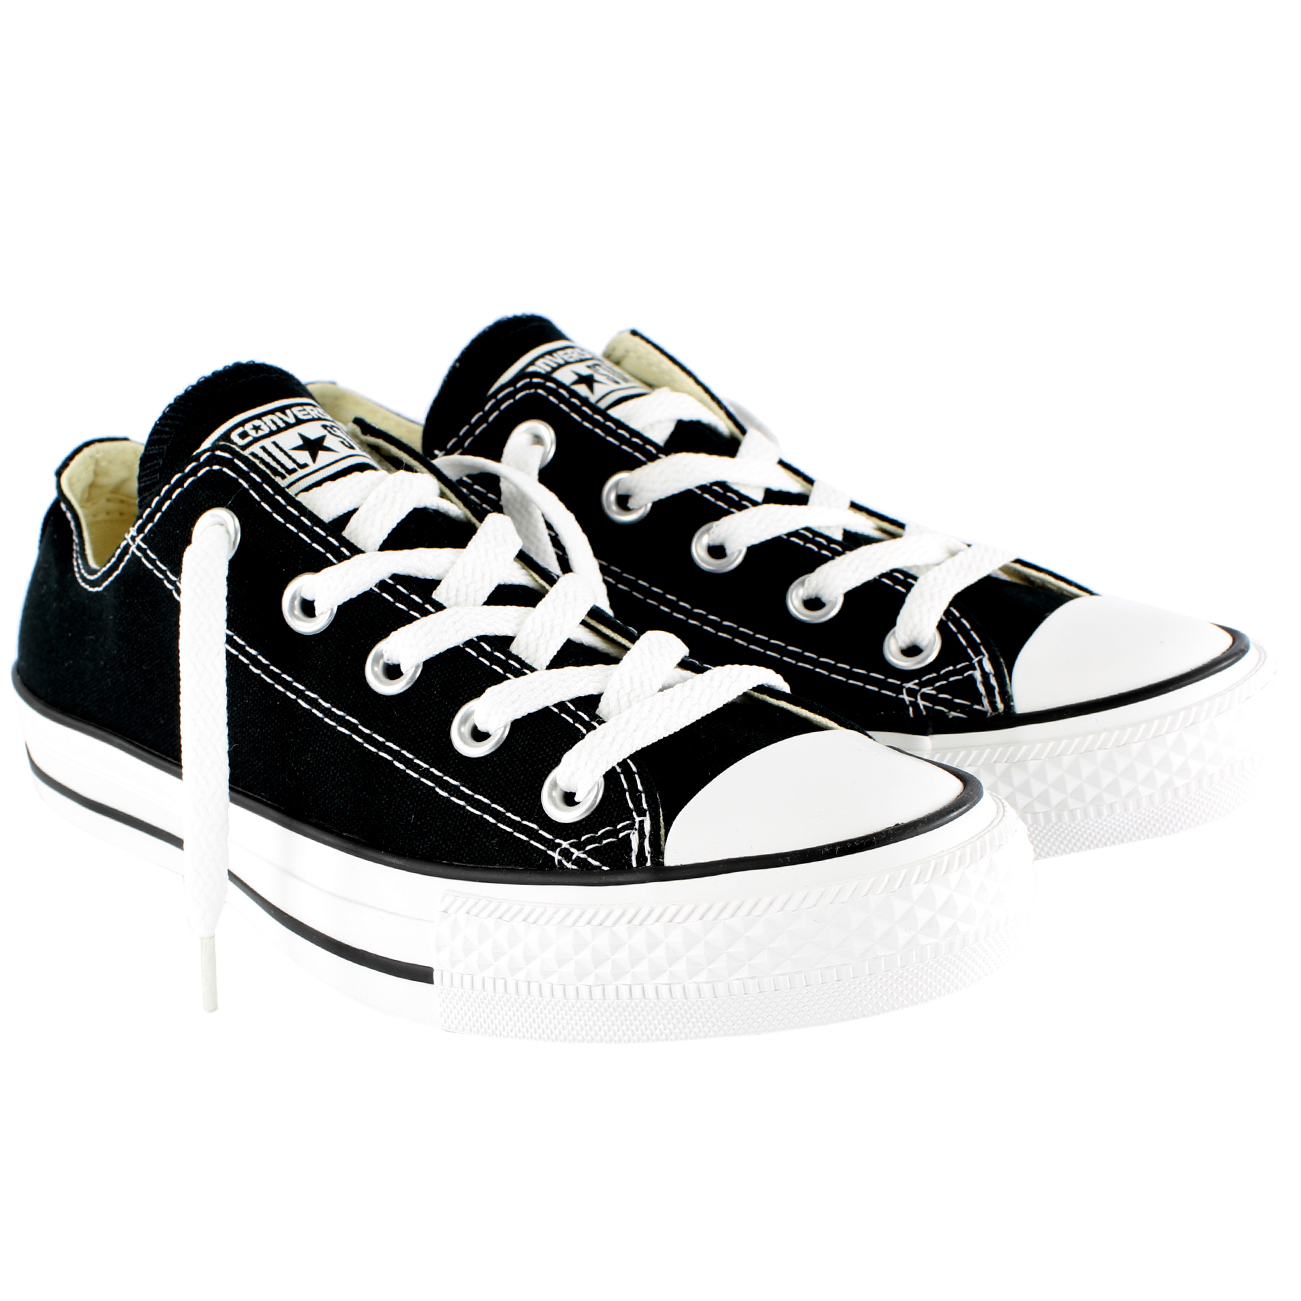 Converse All Star Ox Chuck Taylor Trainers